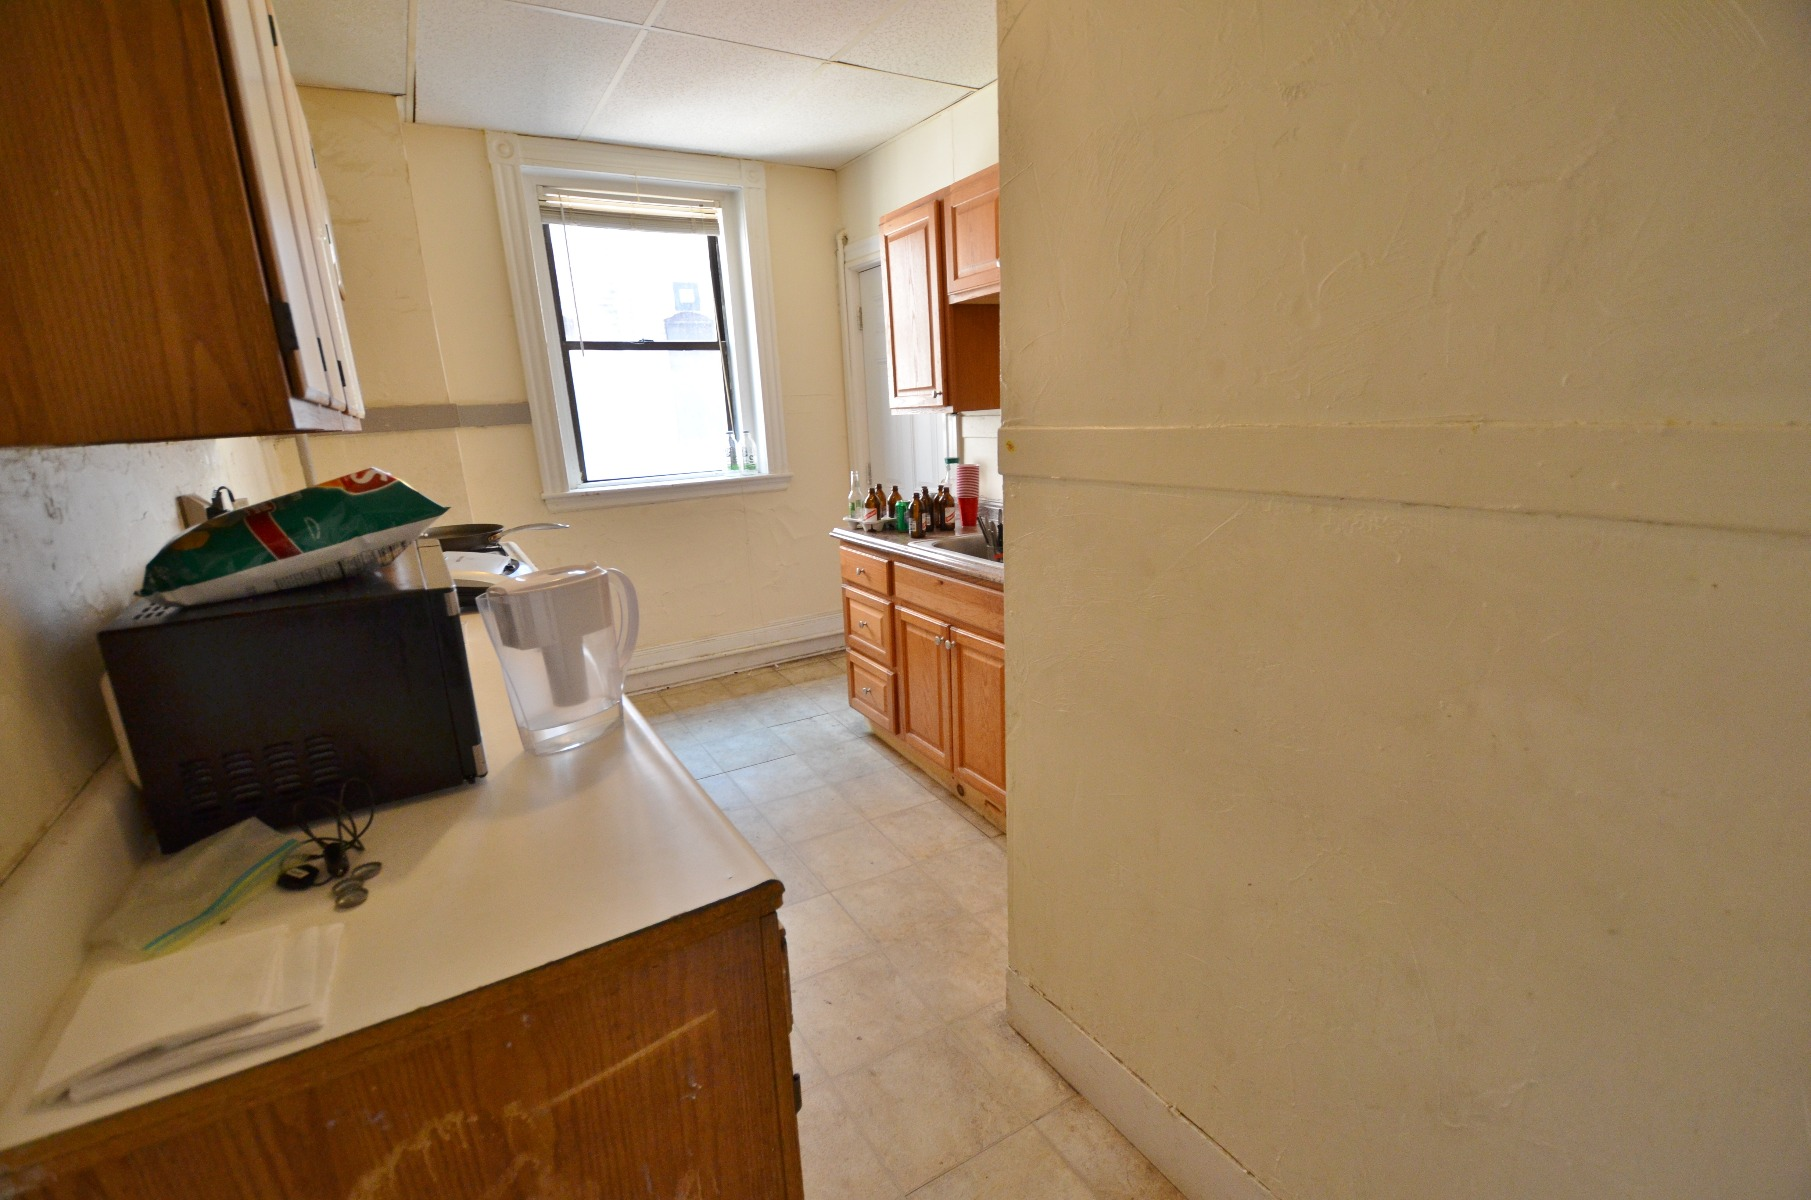 3 BEDROOM APARTMENT ON HEMENWAY NO BROKER FEE